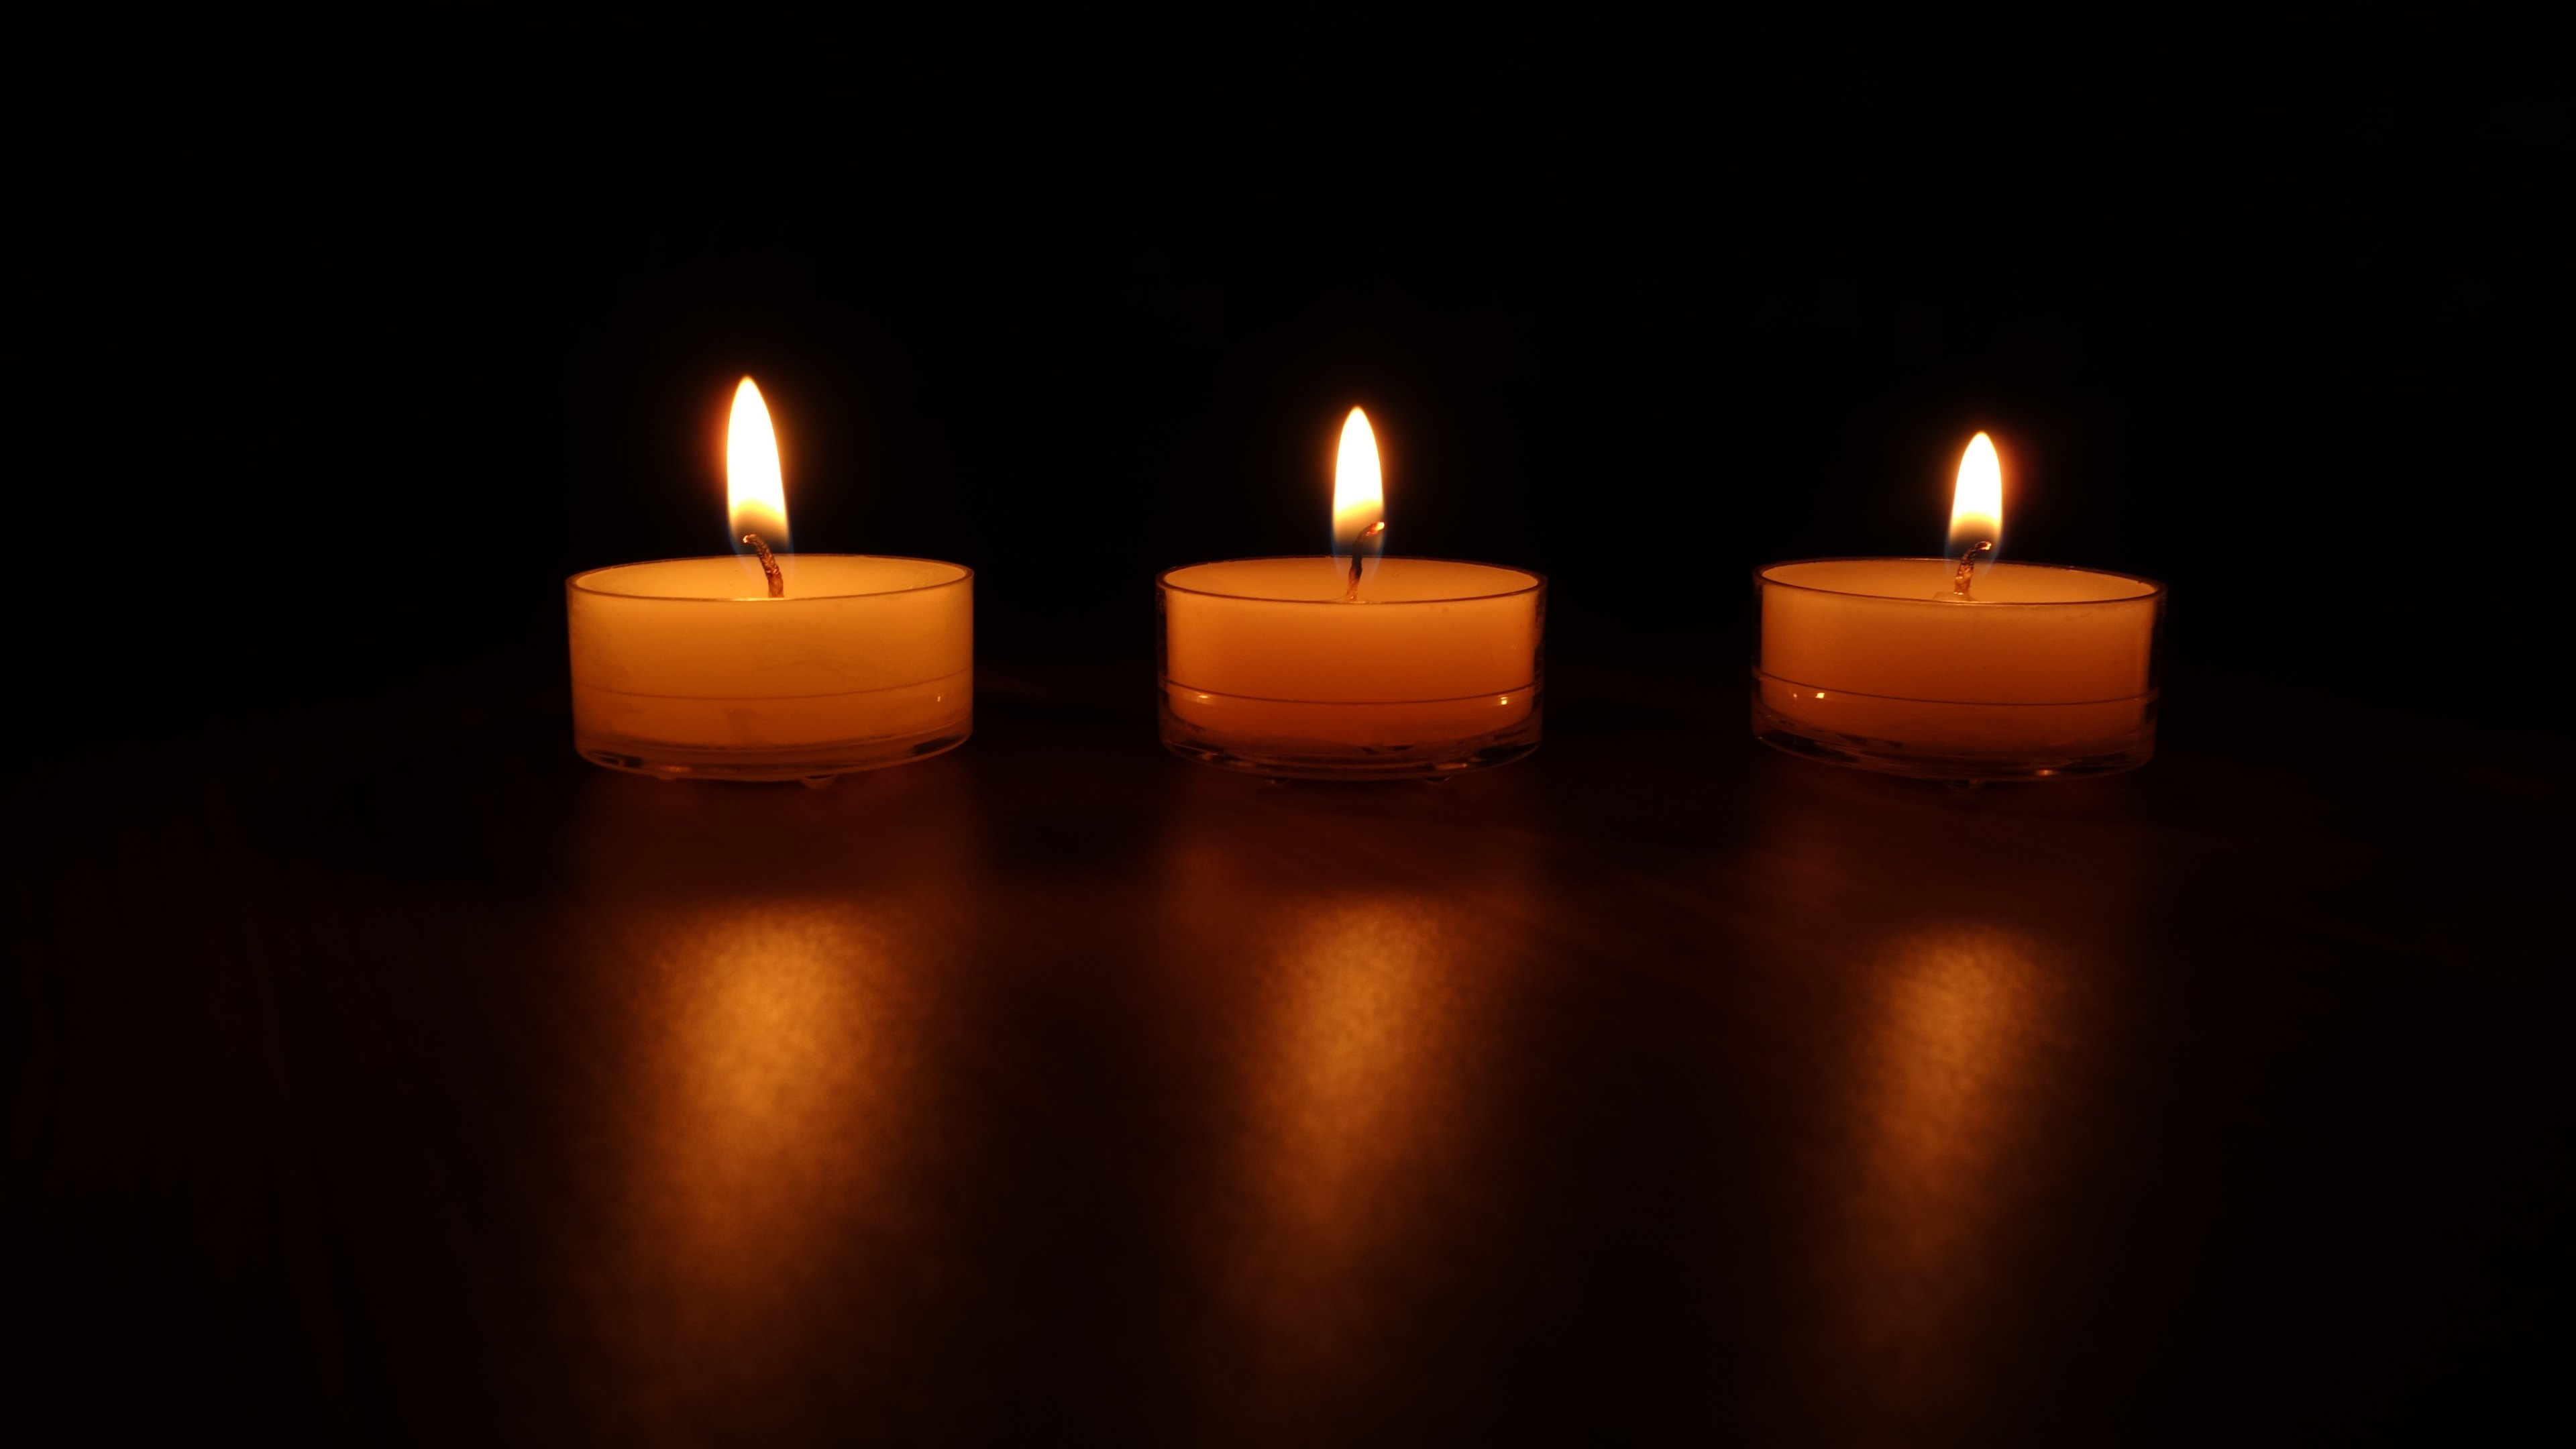 Candles Wallpapers in HD, 4K and wide sizes